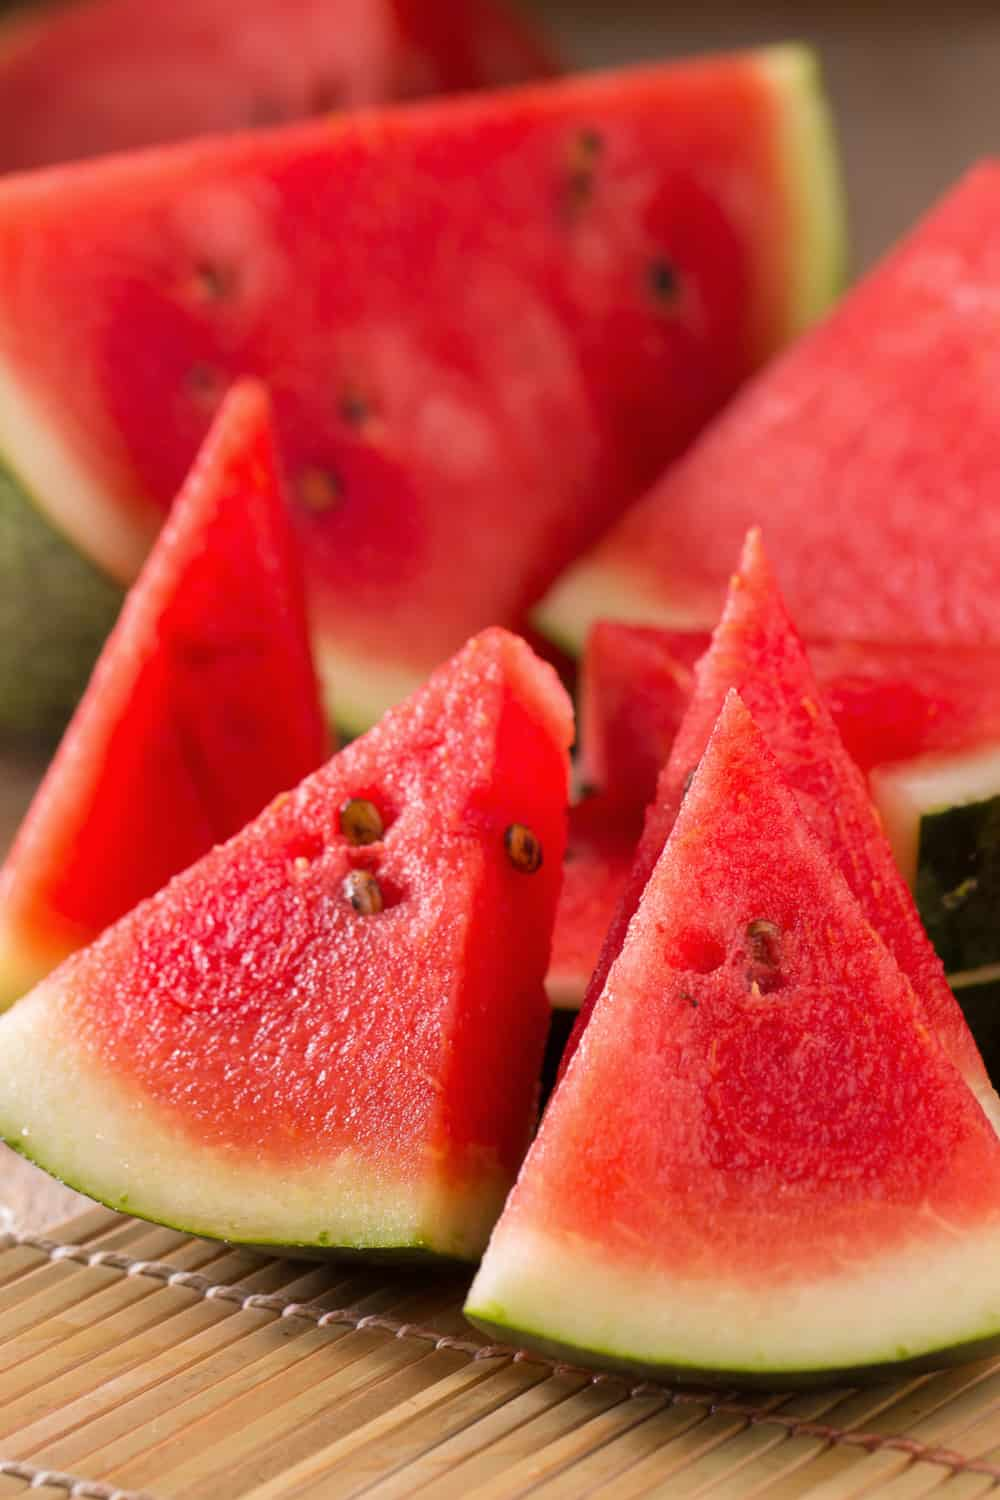 Does Watermelon Go Bad How Long Does It Last